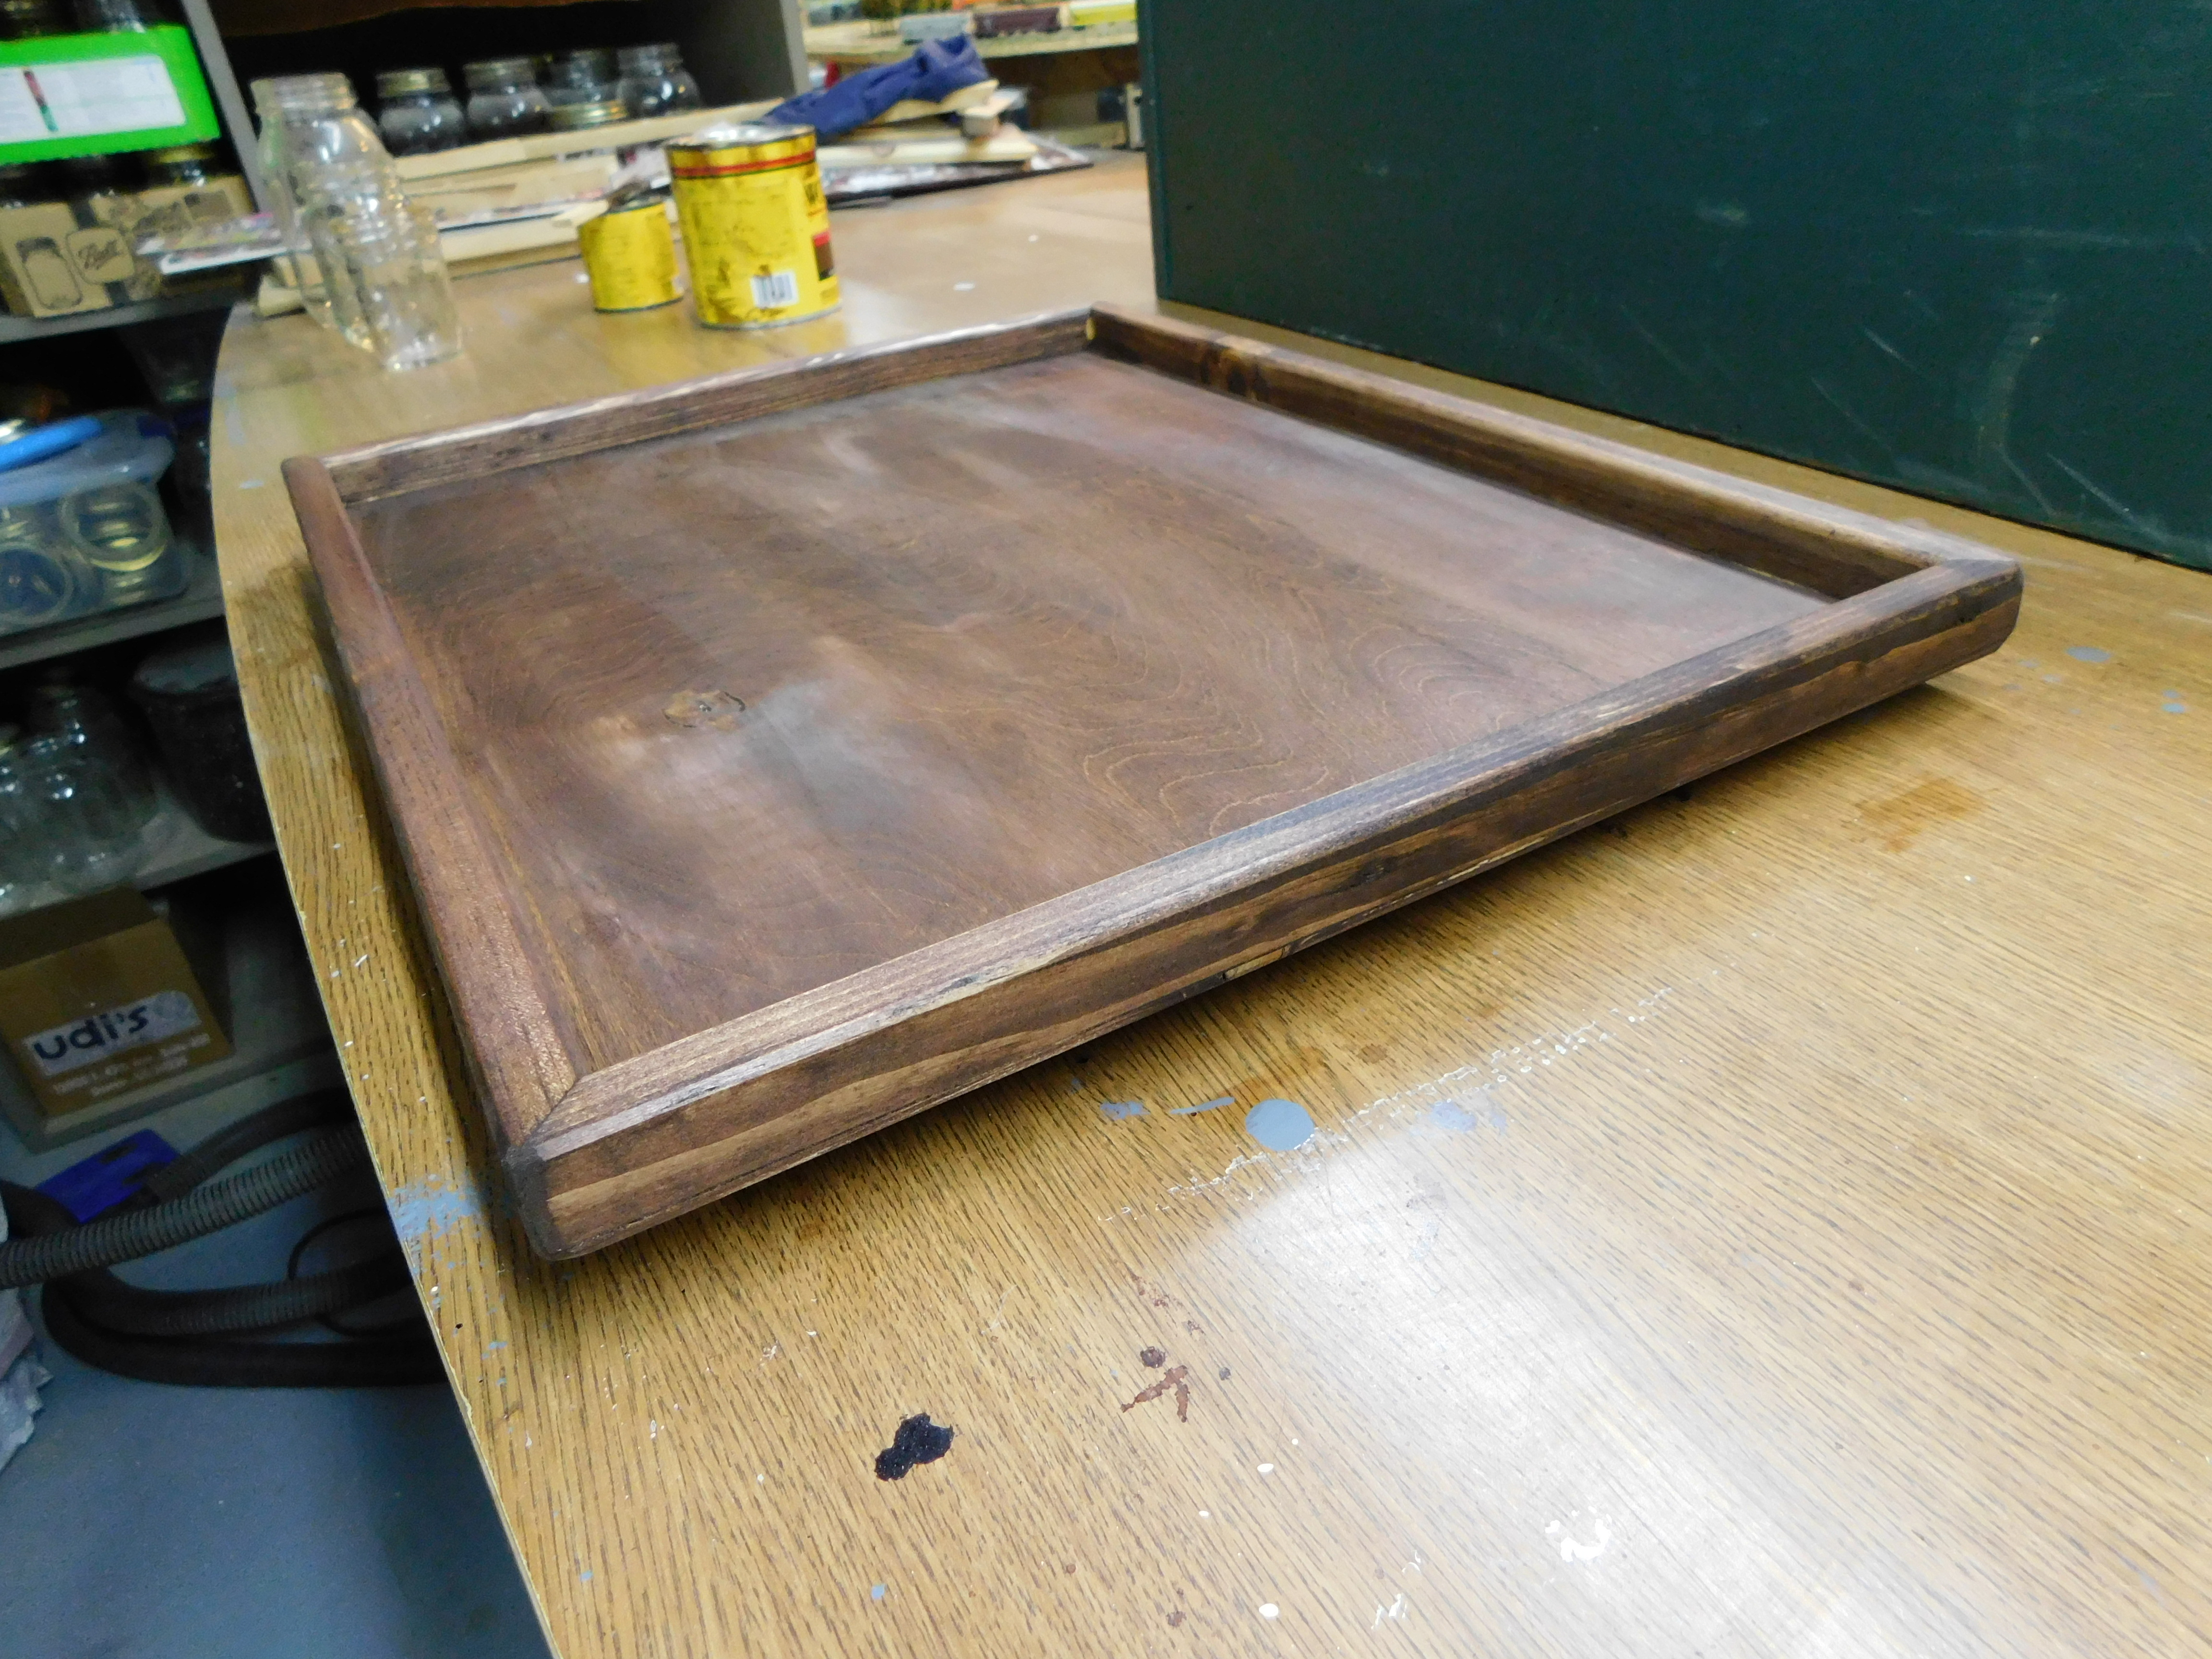 Sewing Tray Stained 4-18-21